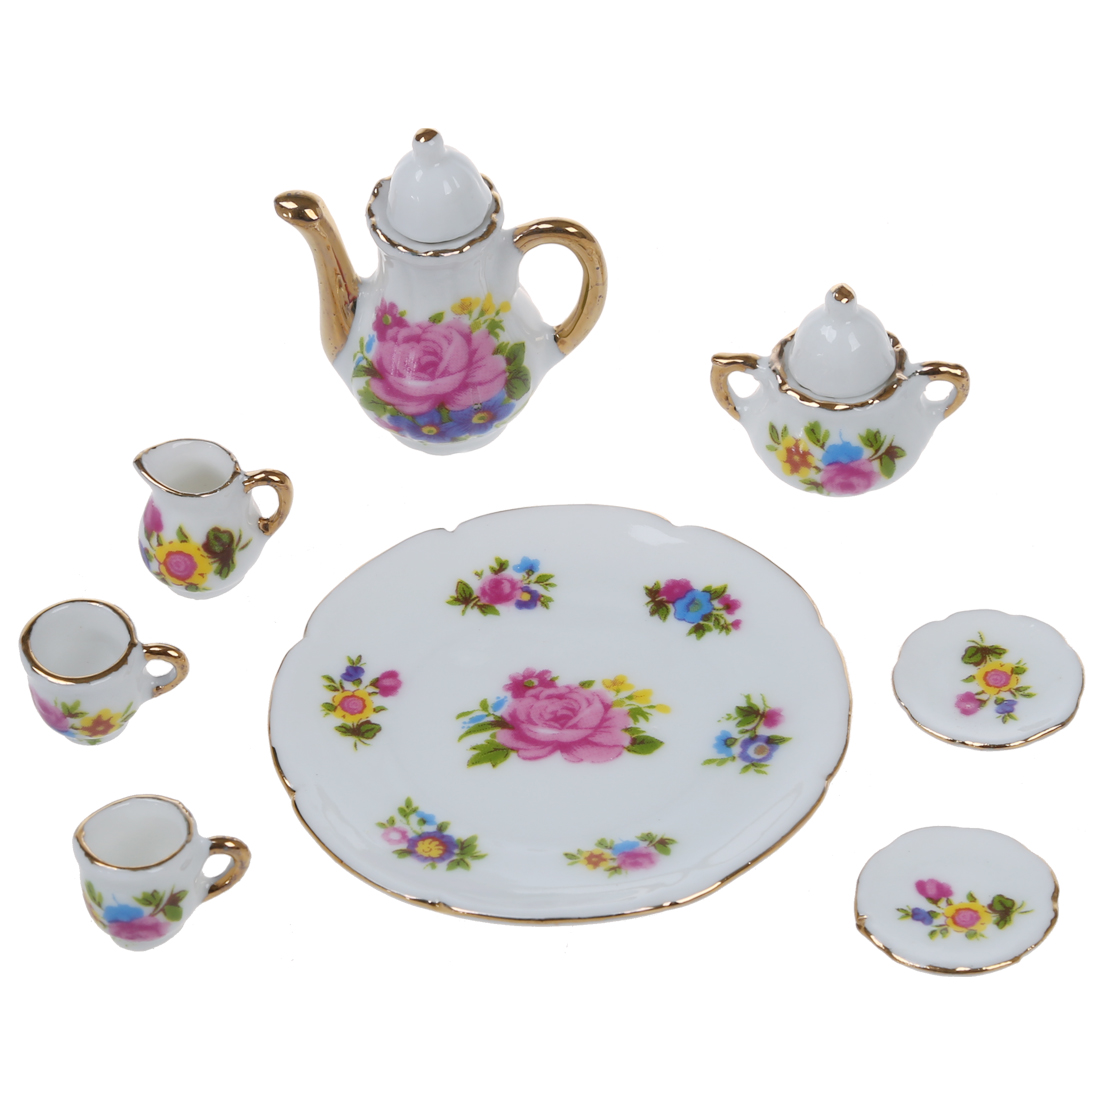 8pcs 1/6 Dollhouse Miniature Dining Ware <font><b>Porcelain</b></font> Dish/<font><b>Cup</b></font>/Plate Tea Set---Pink Rose image